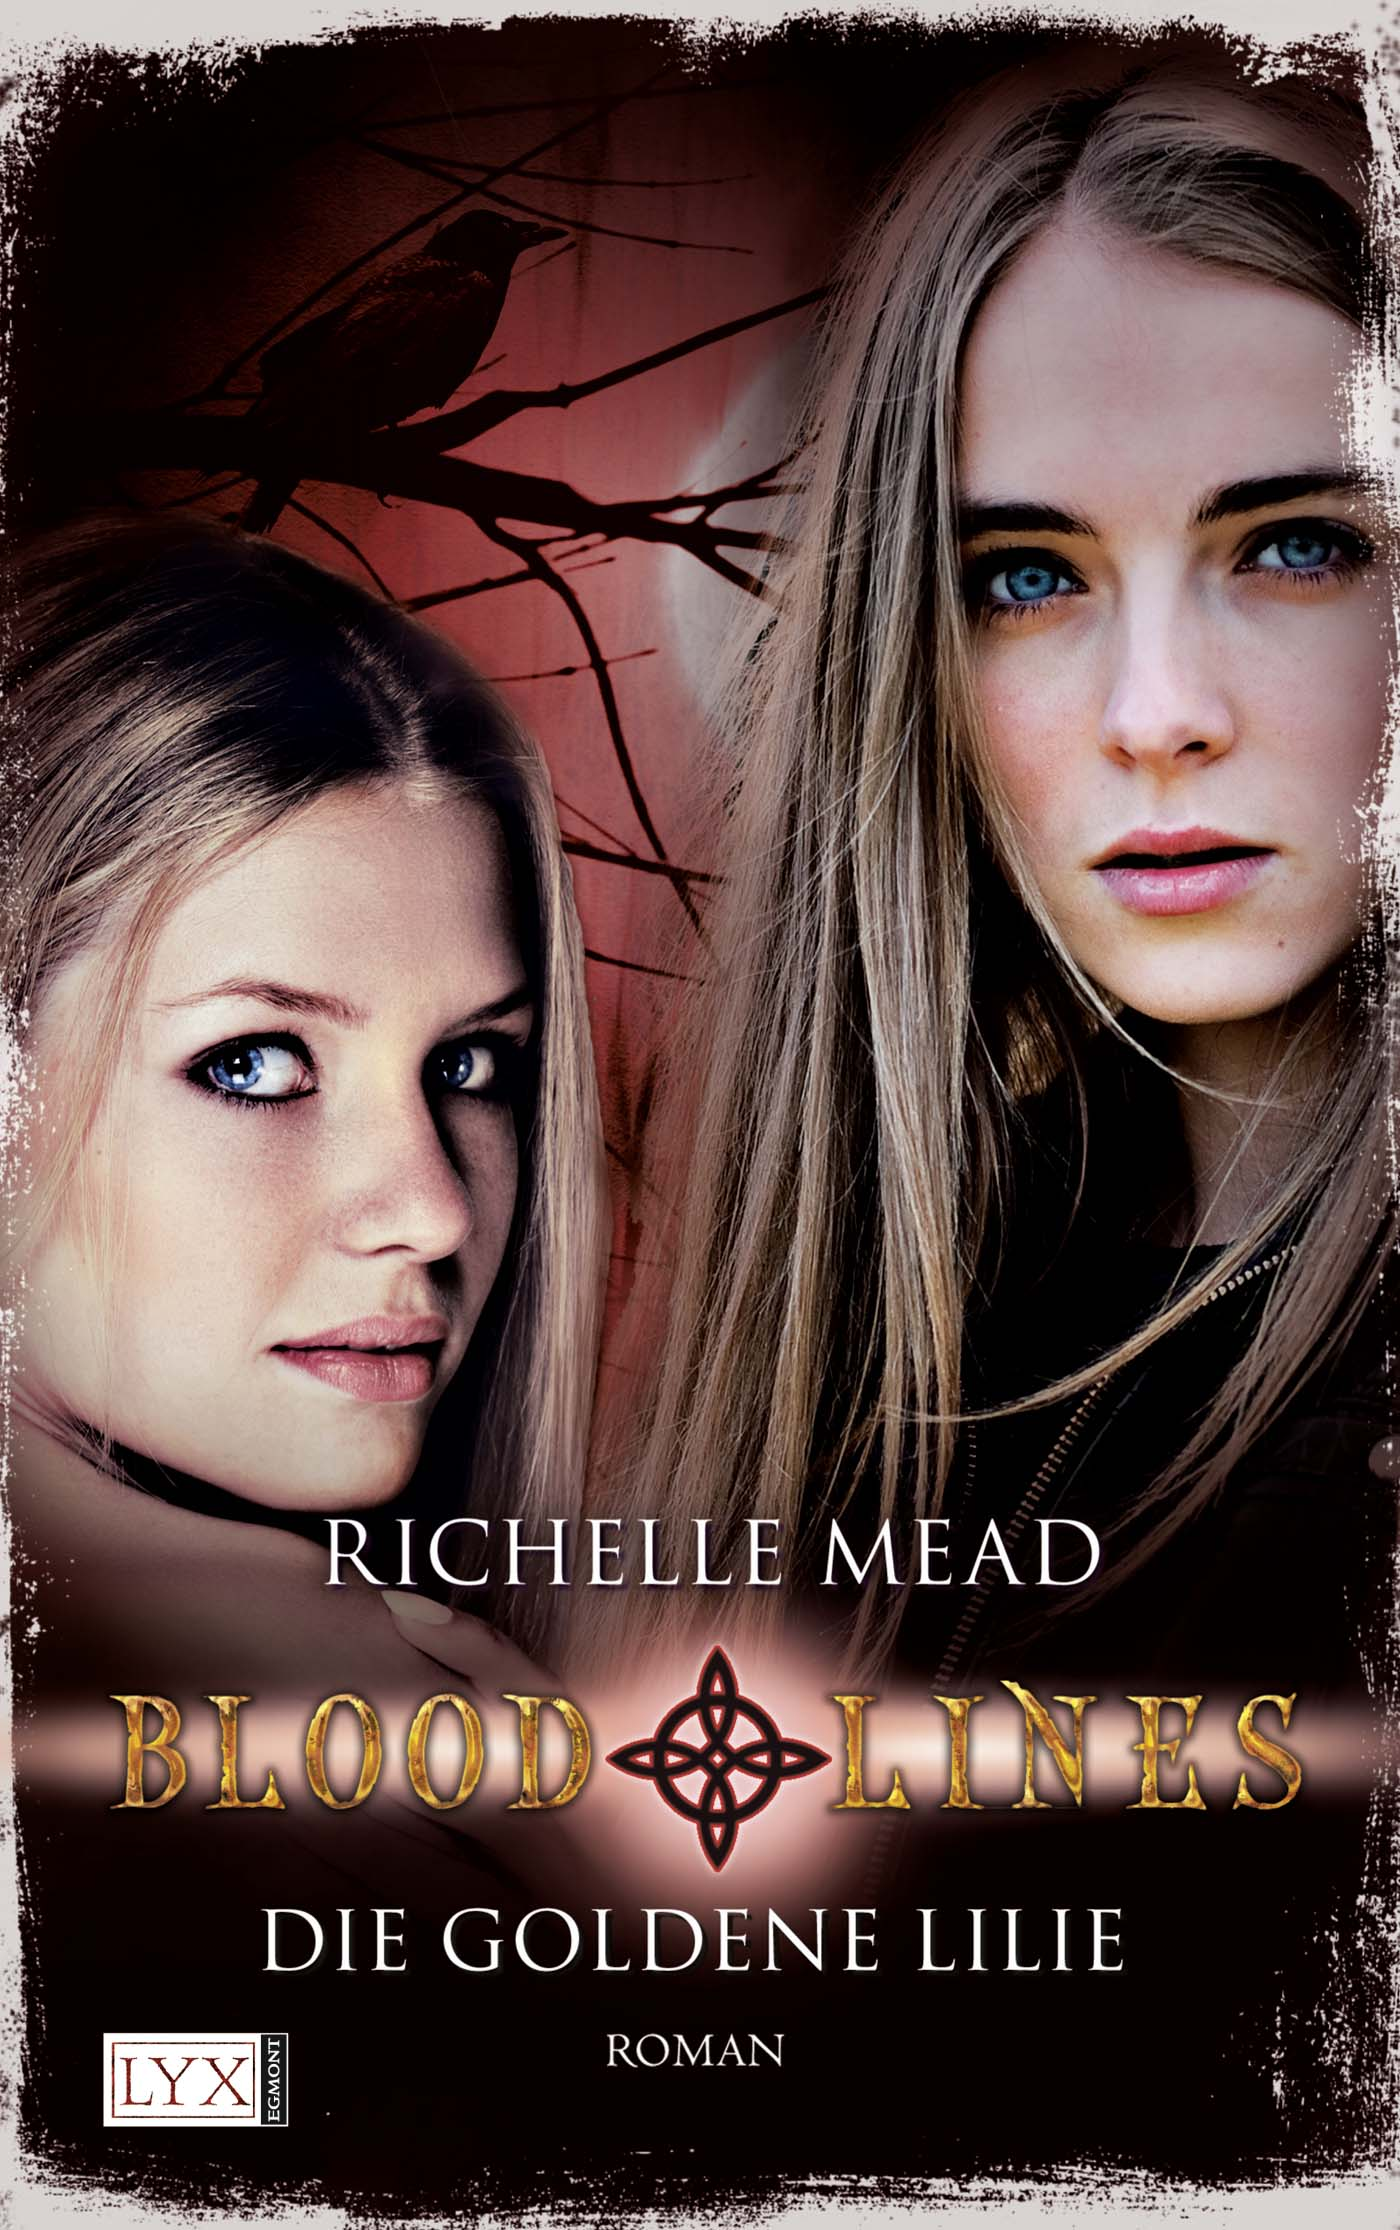 Bloodlines: Die goldene Lilie - Richelle Mead